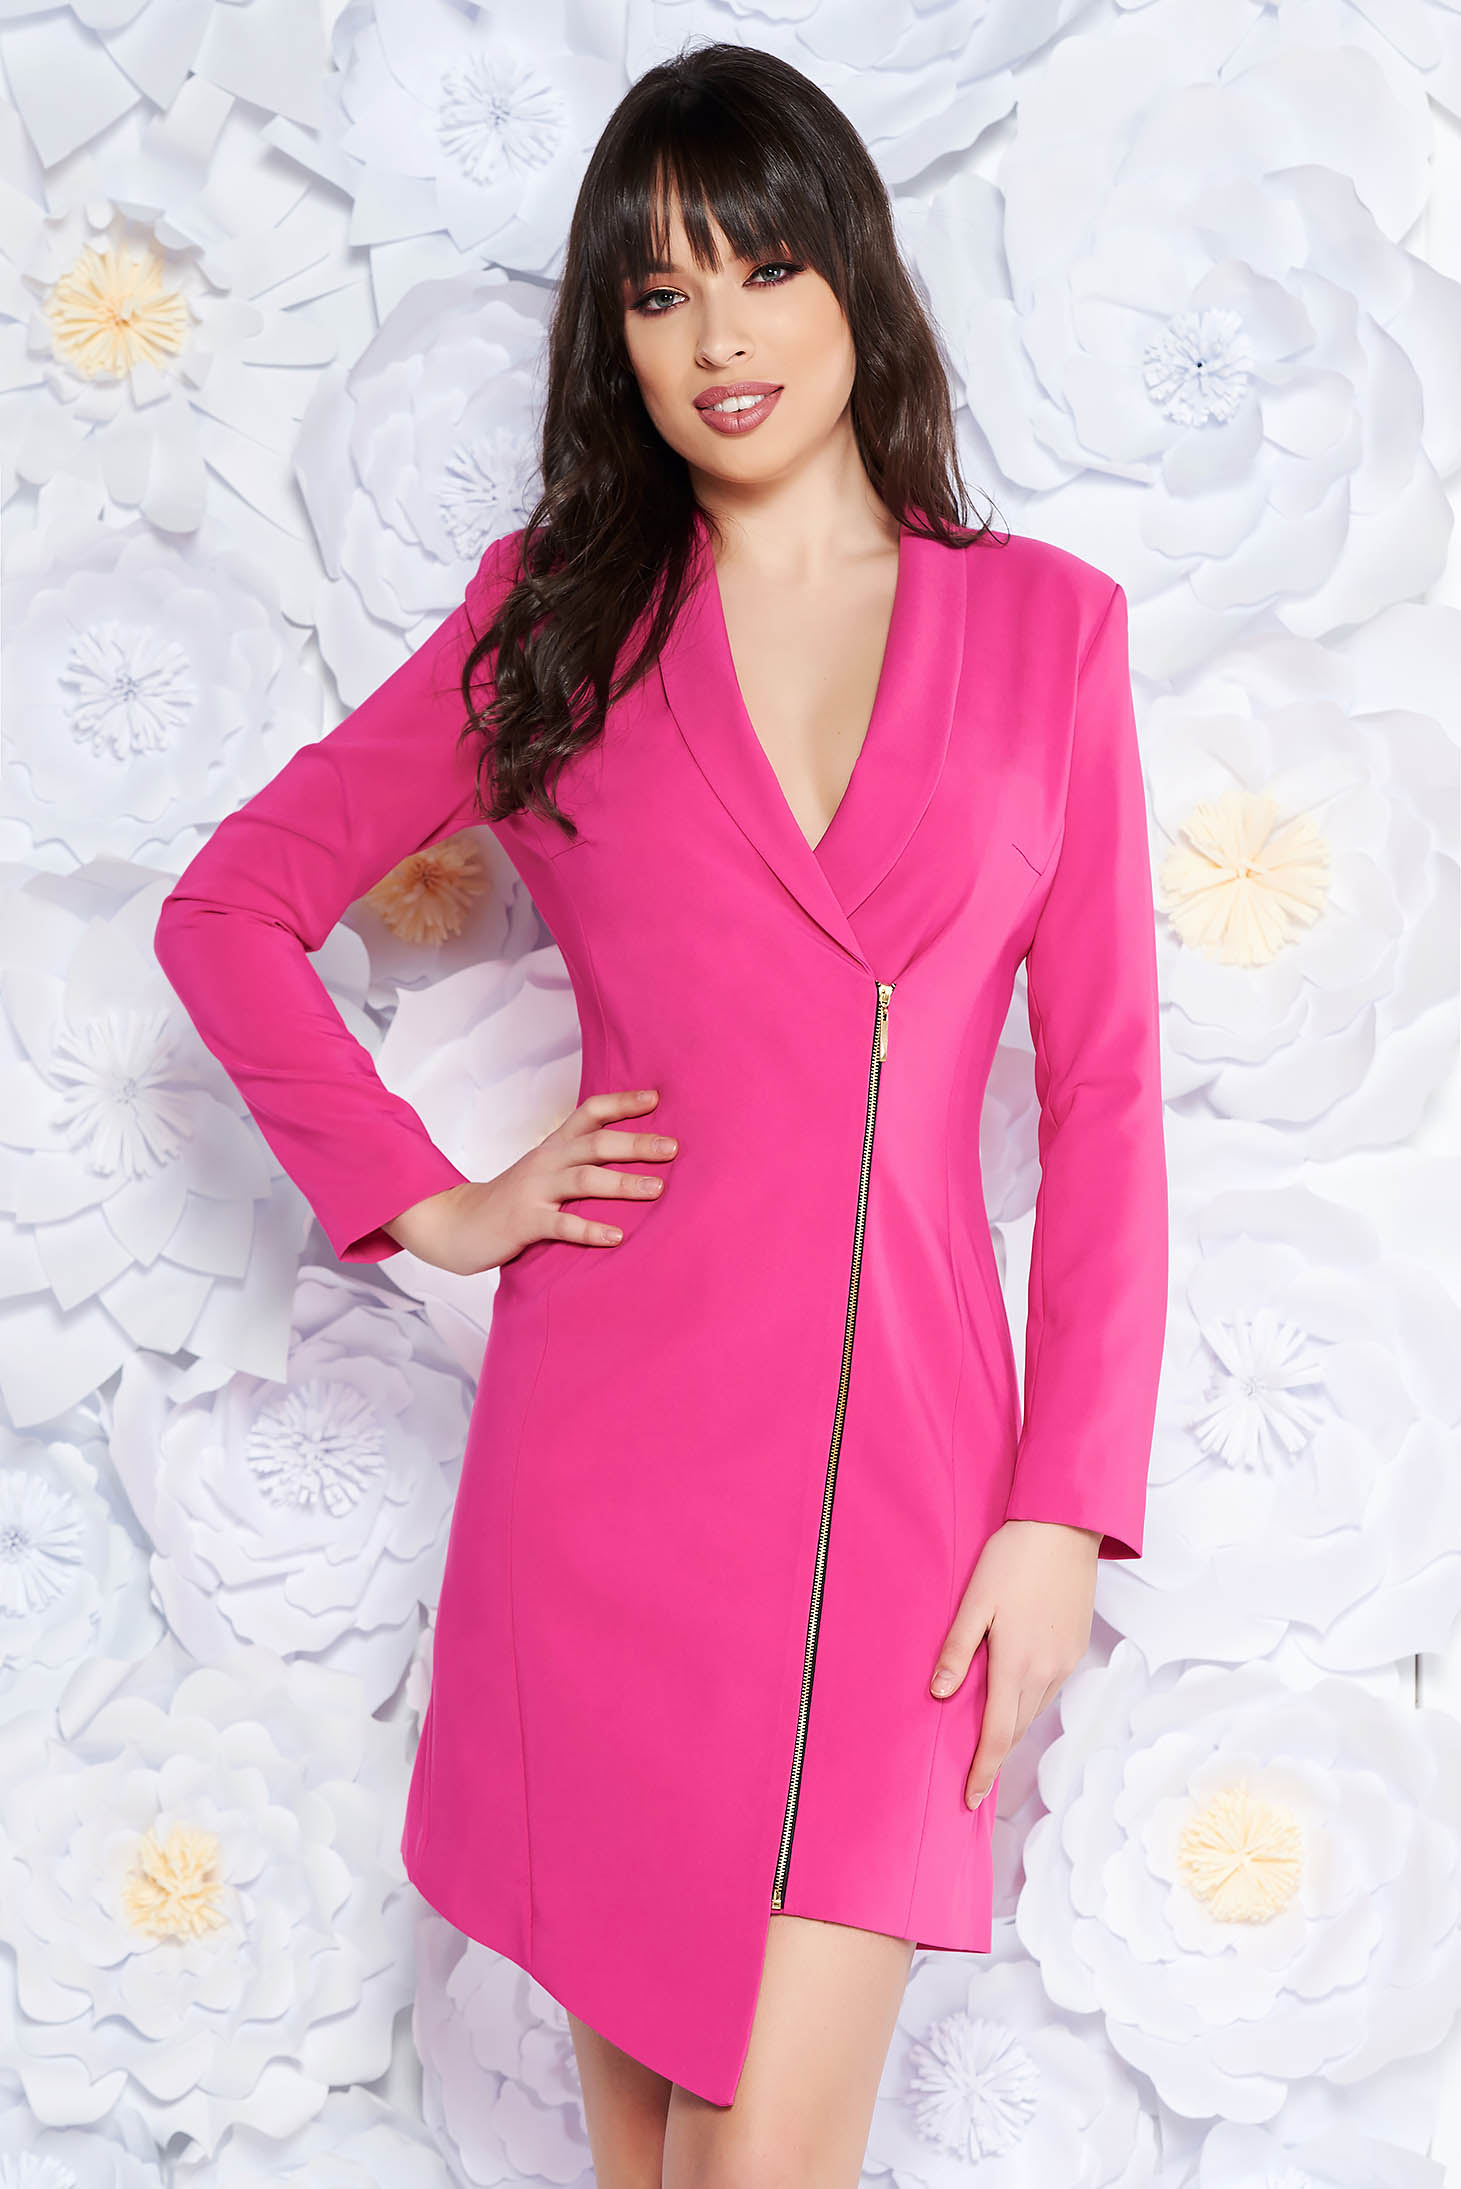 LaDonna pink elegant blazer type dress from non elastic fabric with inside lining long sleeved